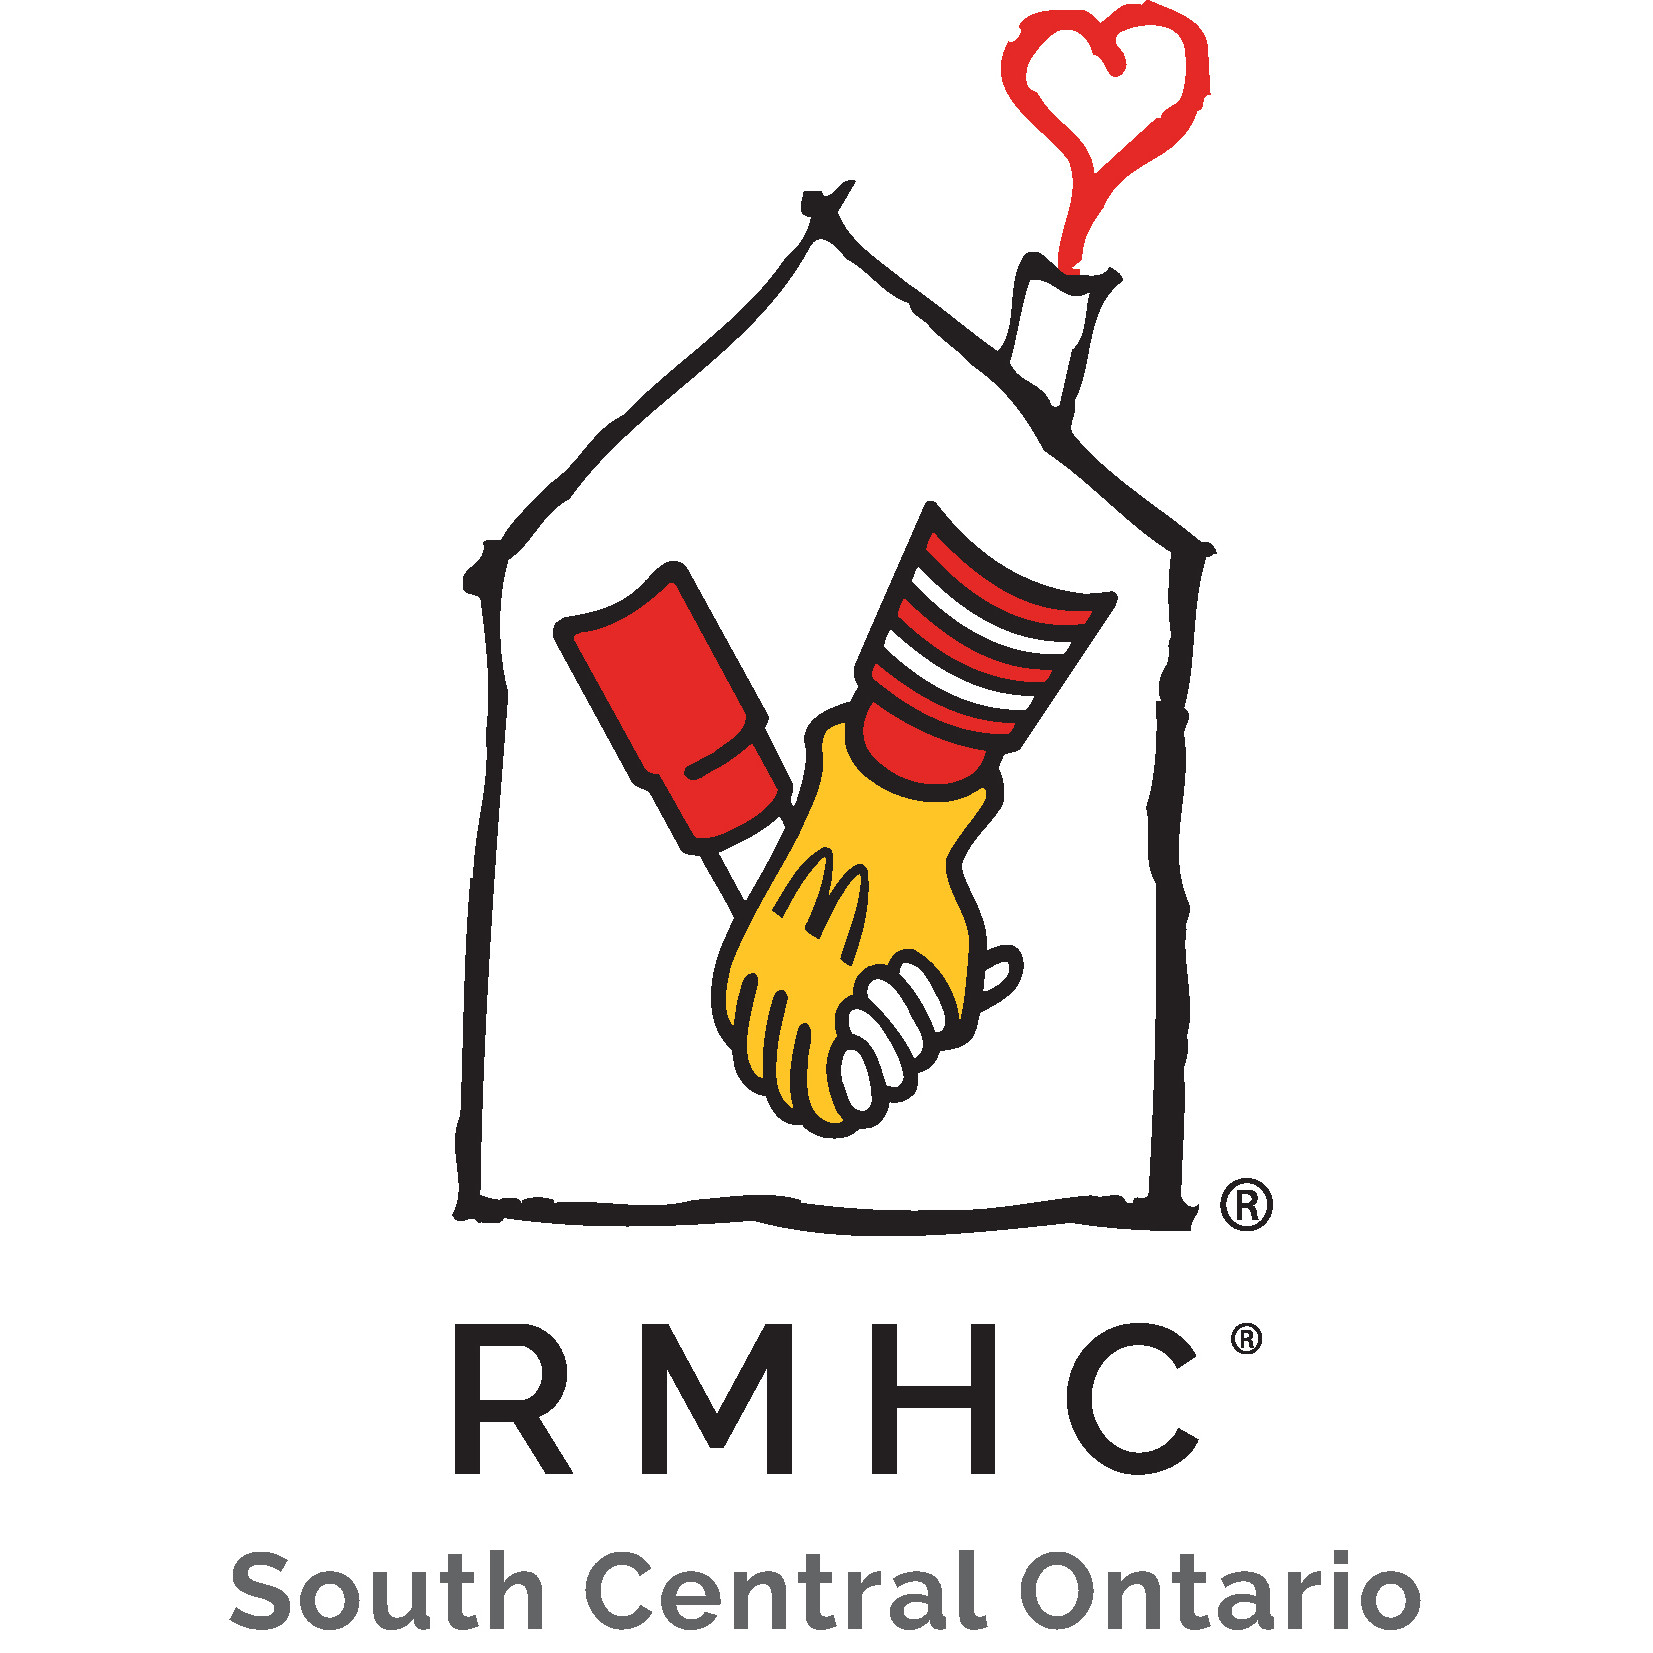 Donate to rmhc south. Footsteps clipart far away